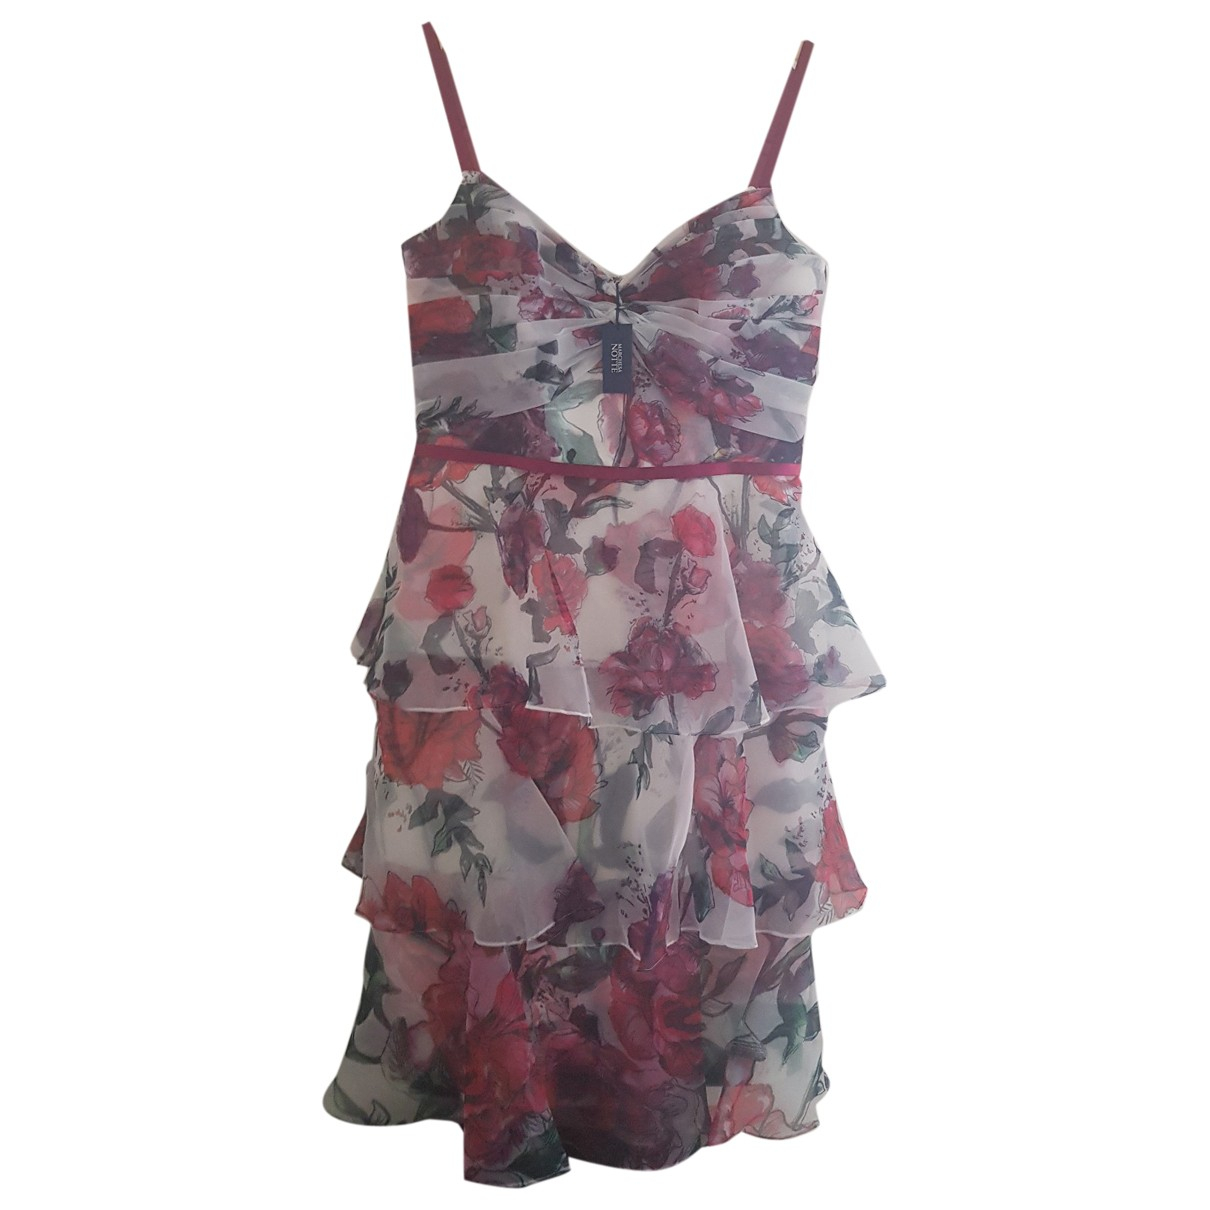 Marchesa Notte \N Burgundy dress for Women 12 UK